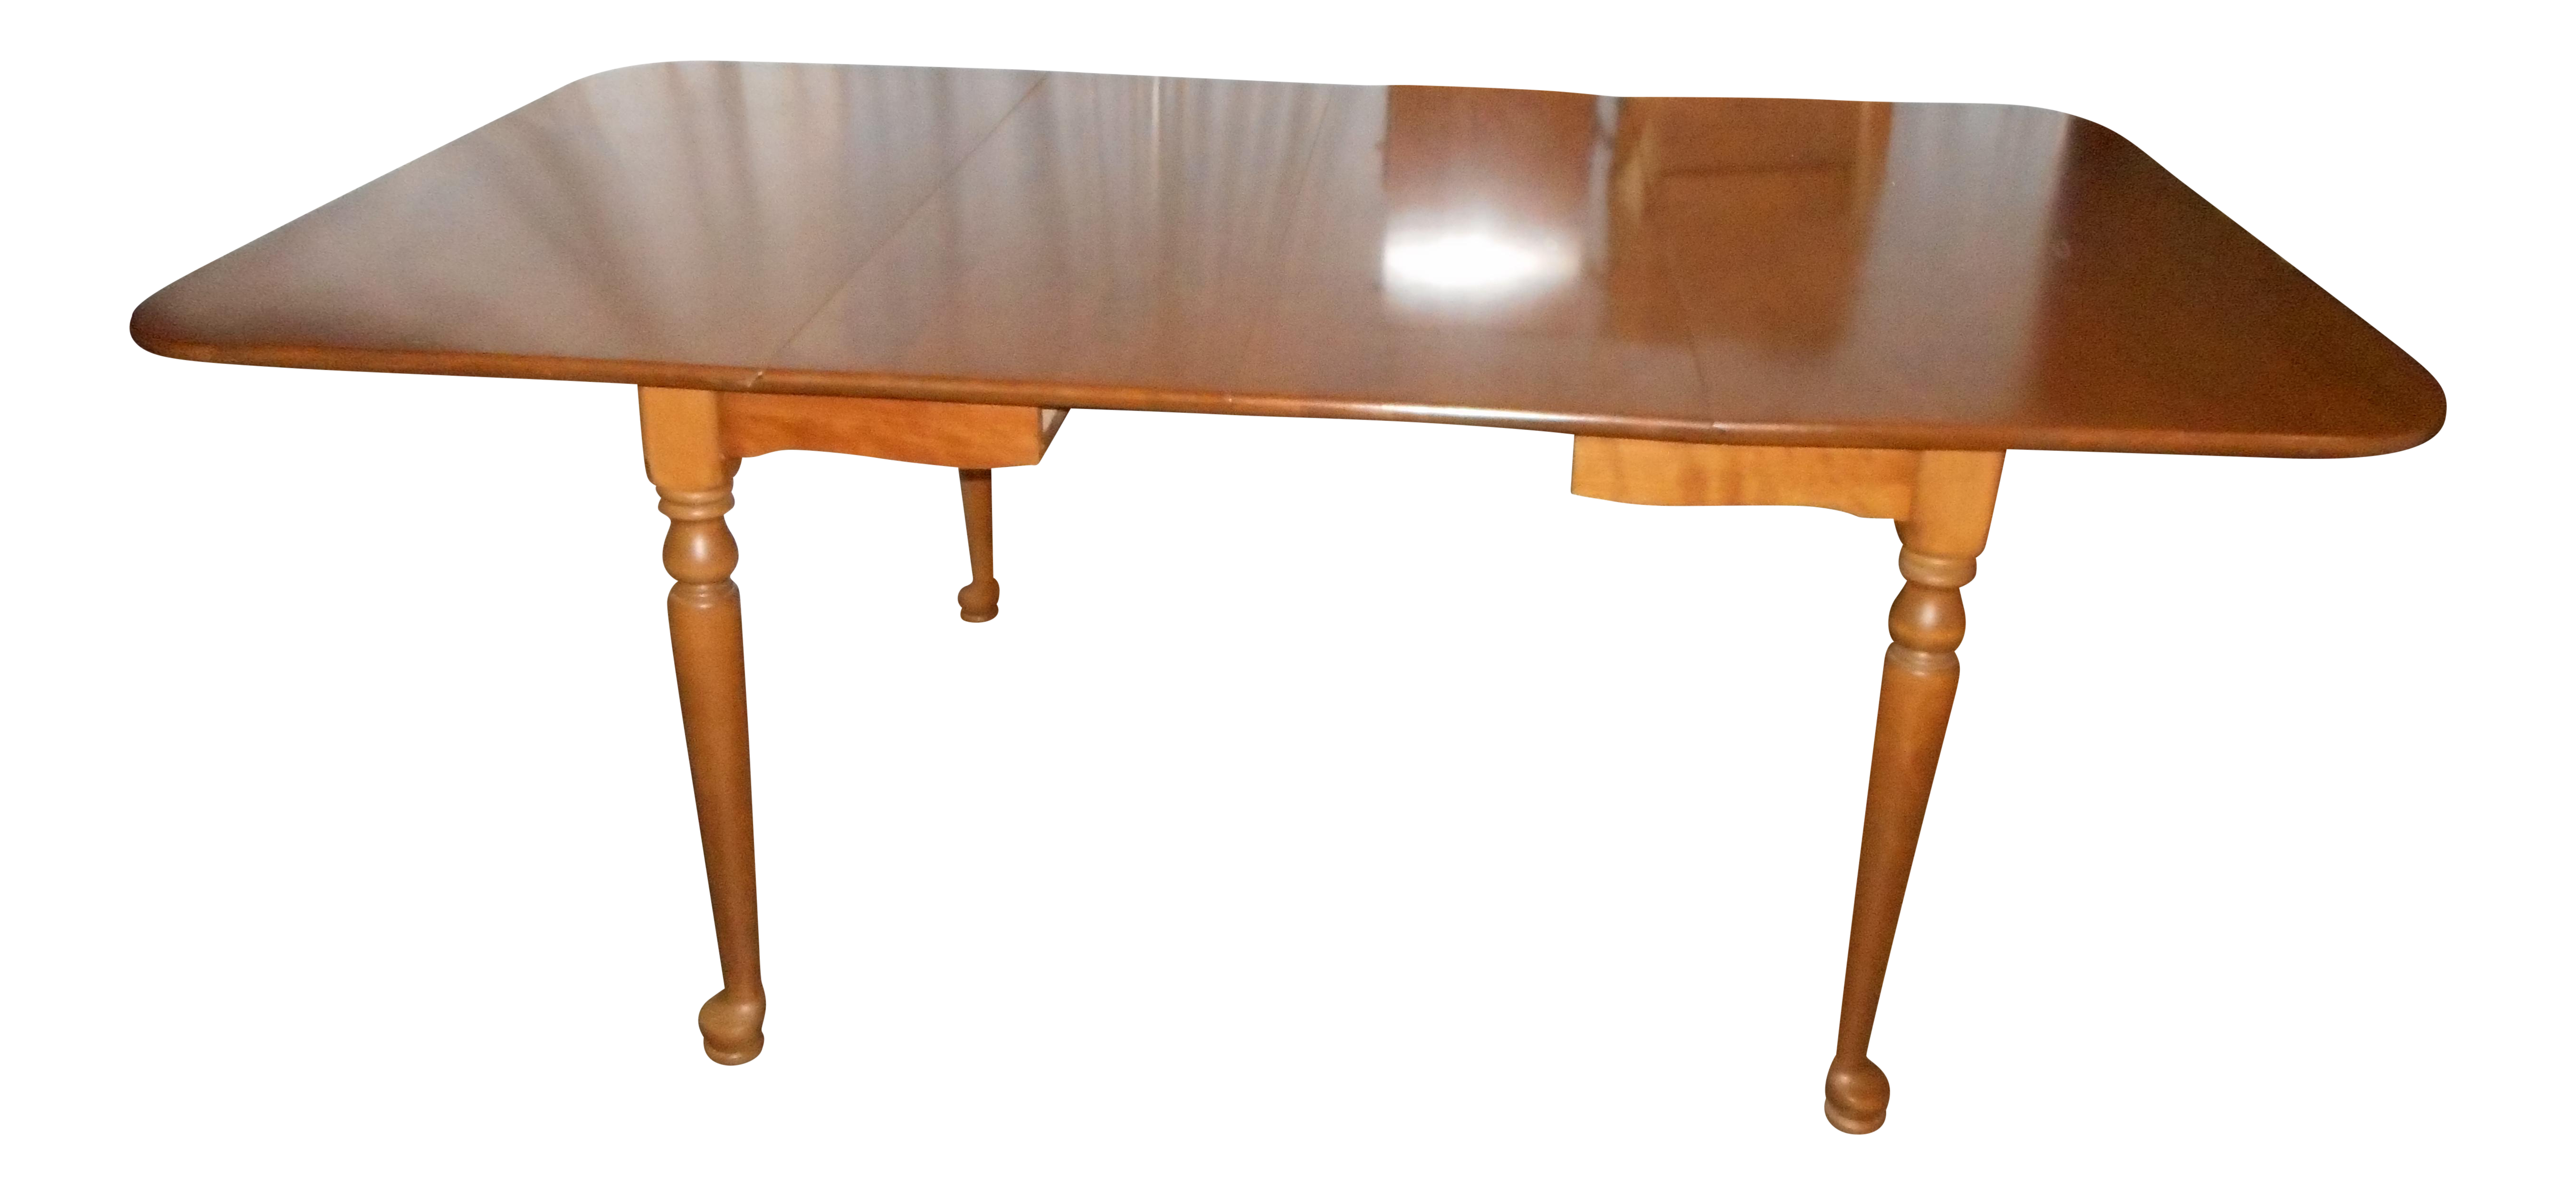 Ethan allen crib for sale - Ethan Allen Drop Leaf Gate Leg Dining Table 2 Leaves Pads